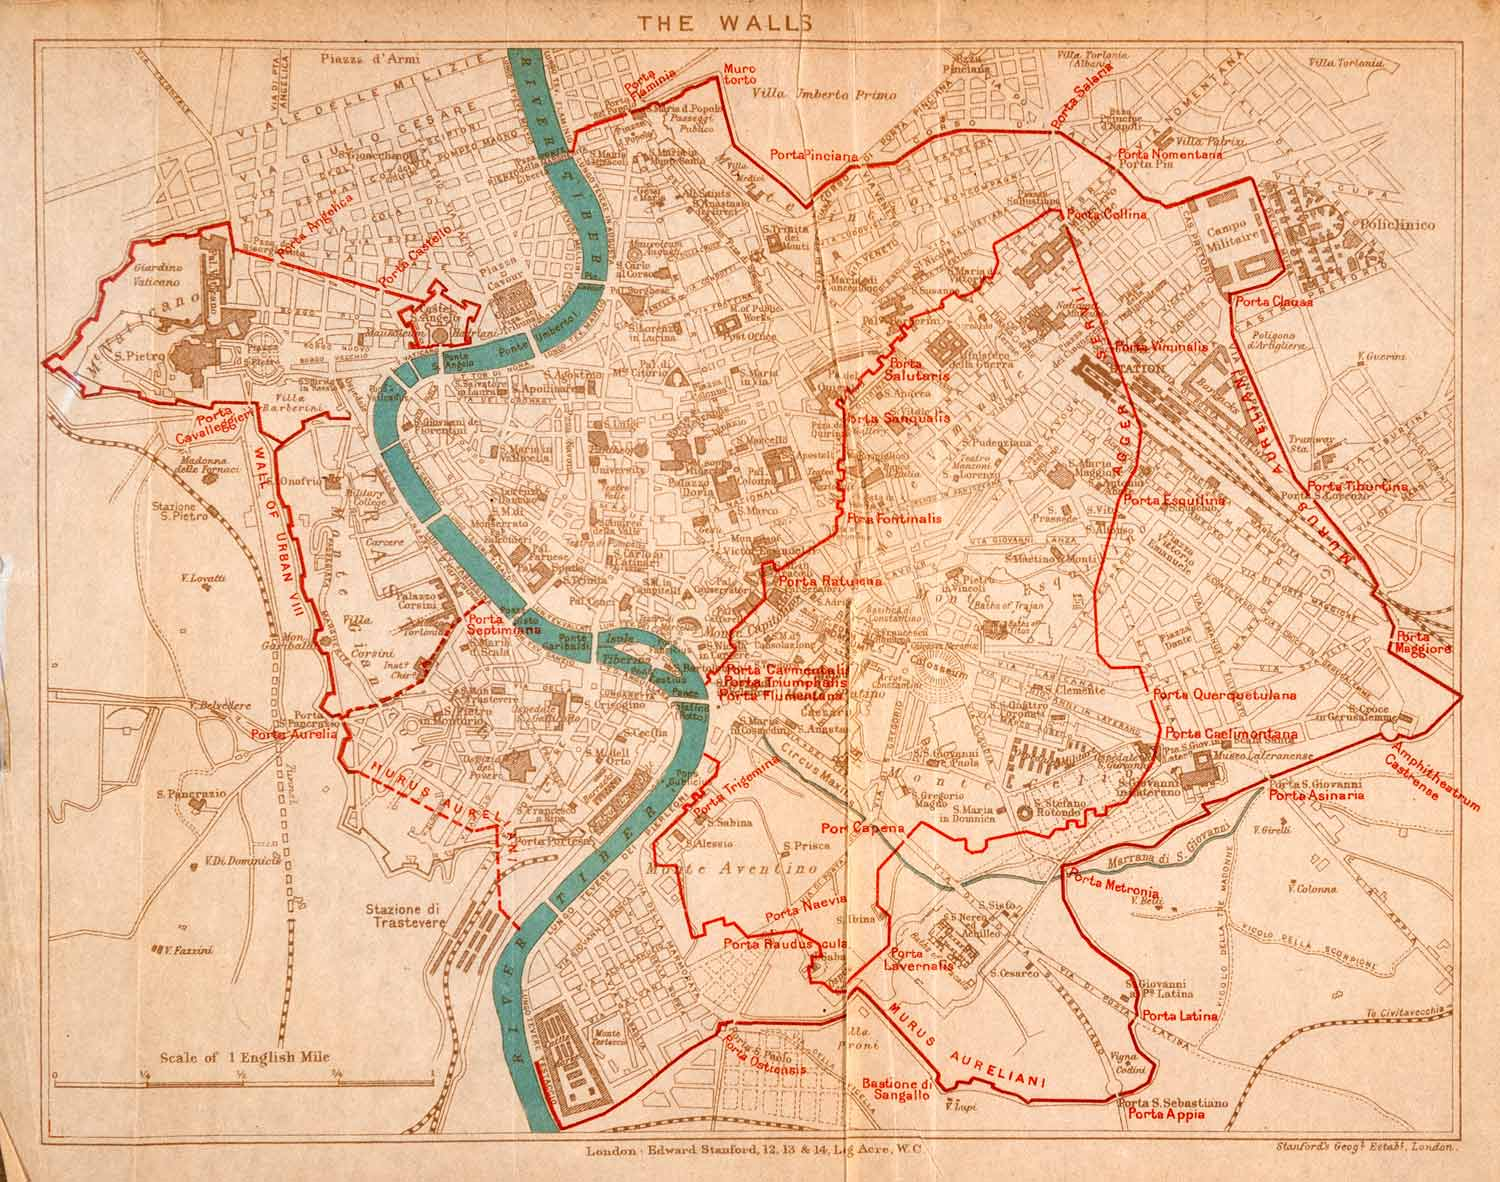 1908 Lithograph Map Plan Rome Italy Ancient City Walls Archaeology History Xgja5